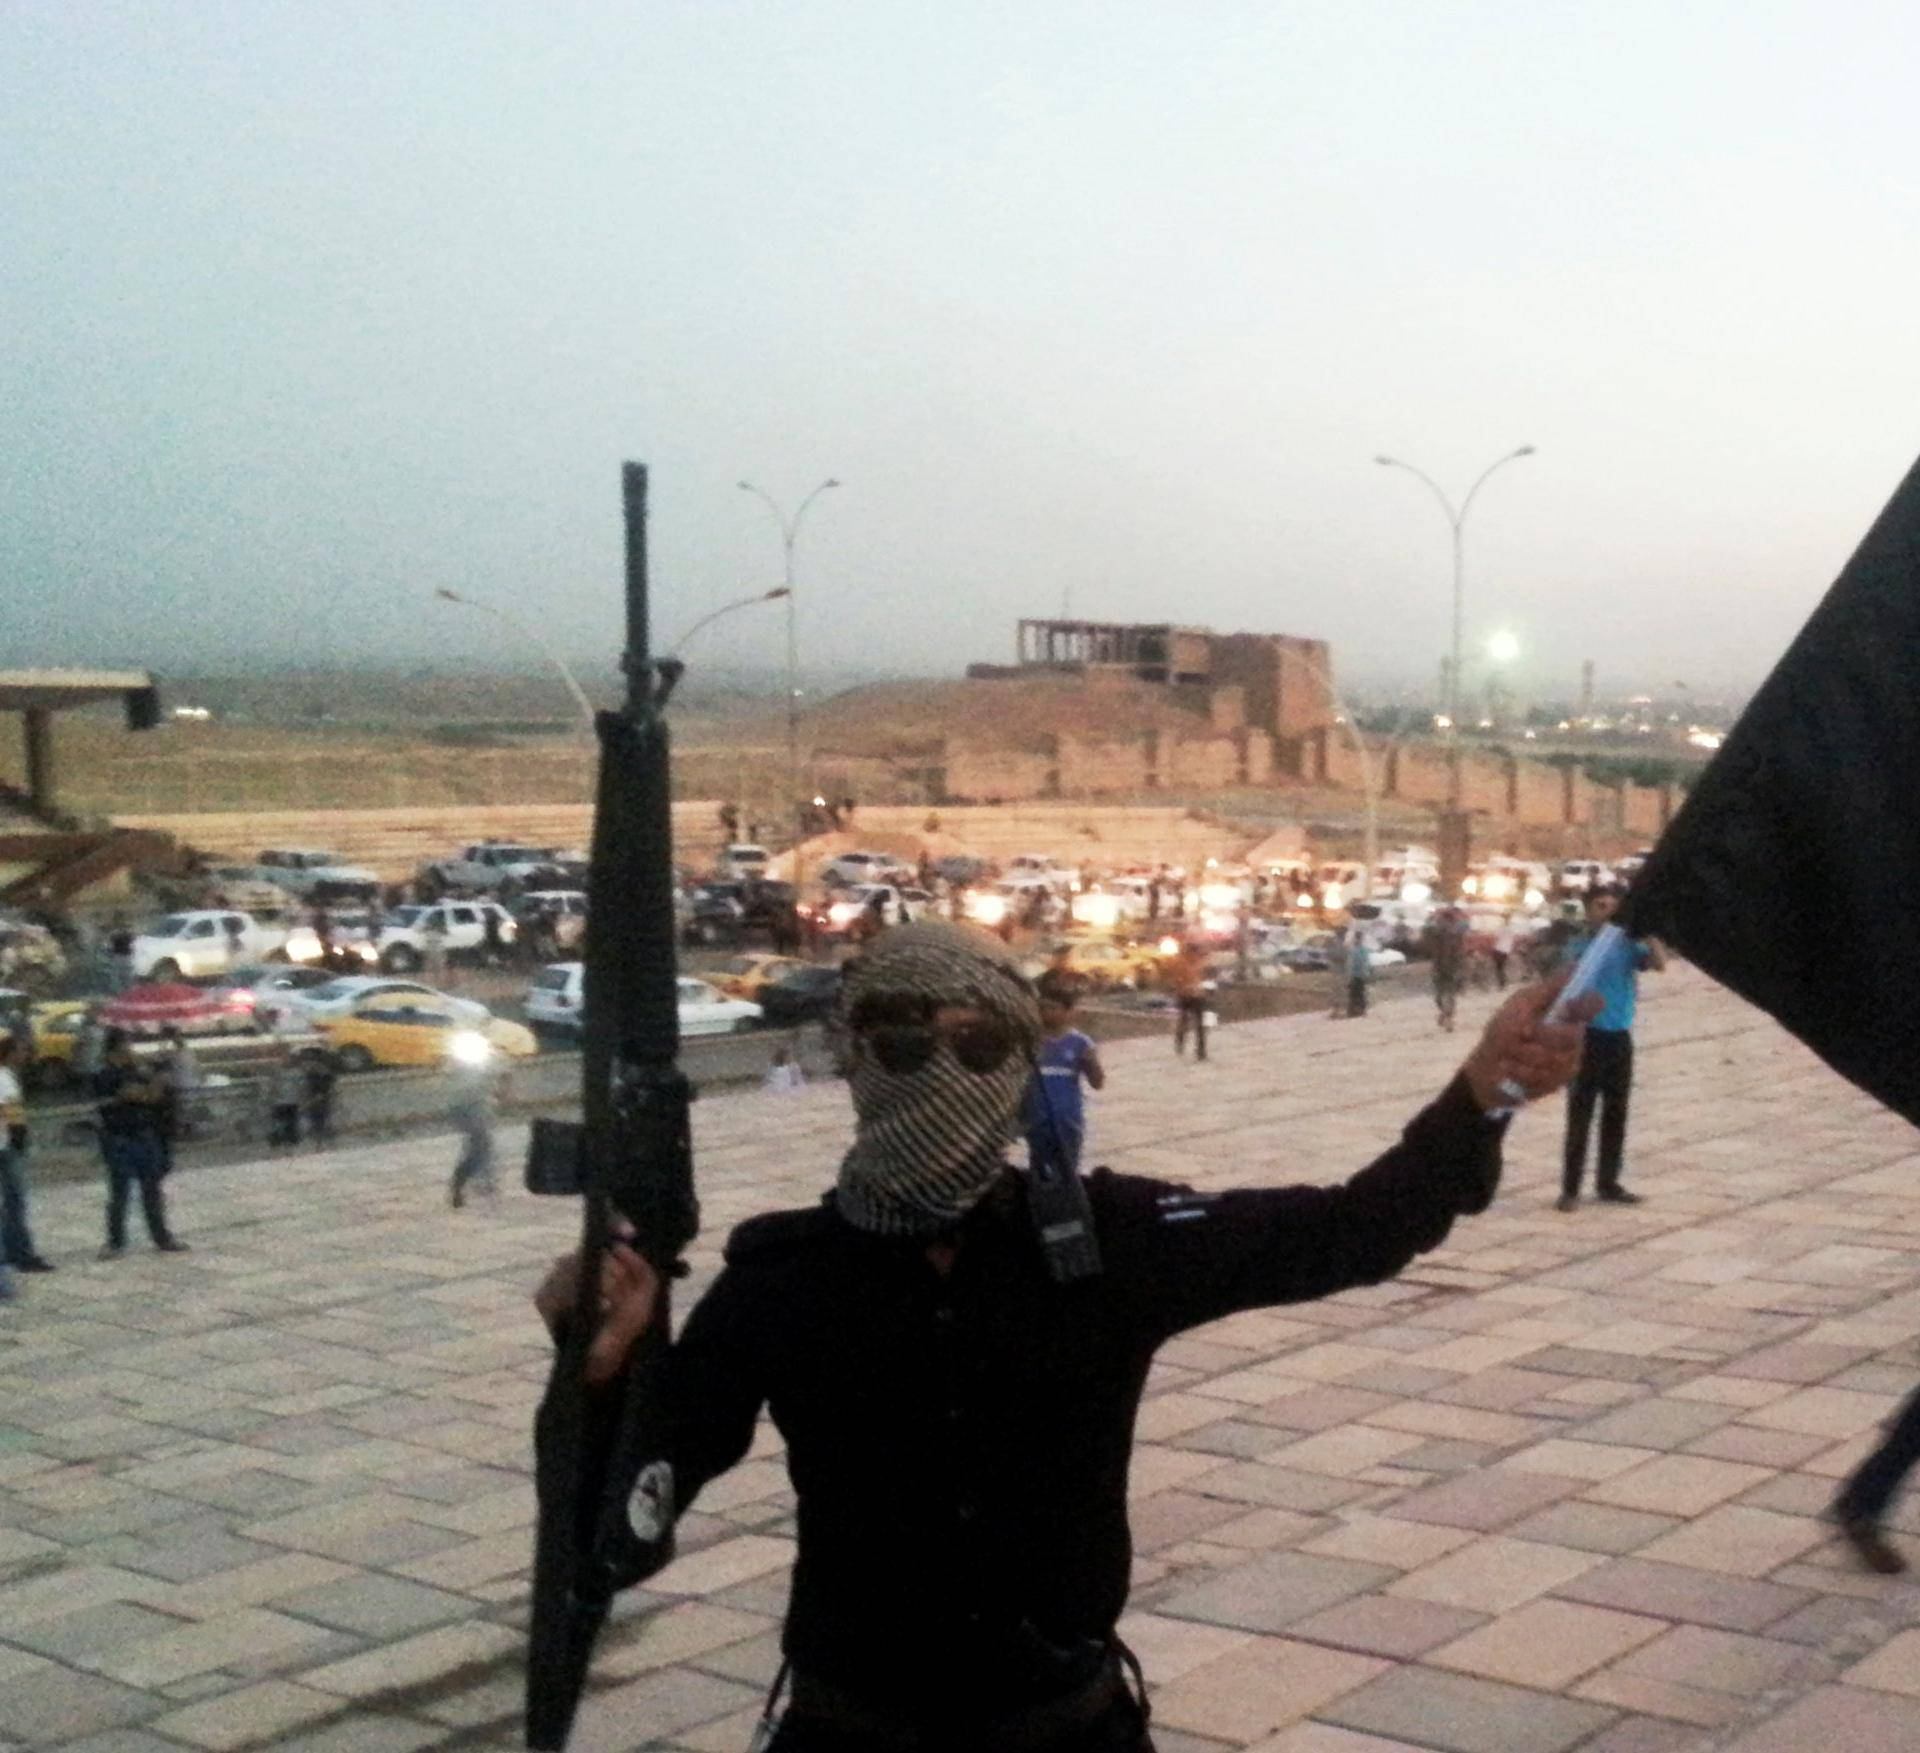 FILE PHOTO: A fighter of the ISIL holds a flag and a weapon on a street in Mosul